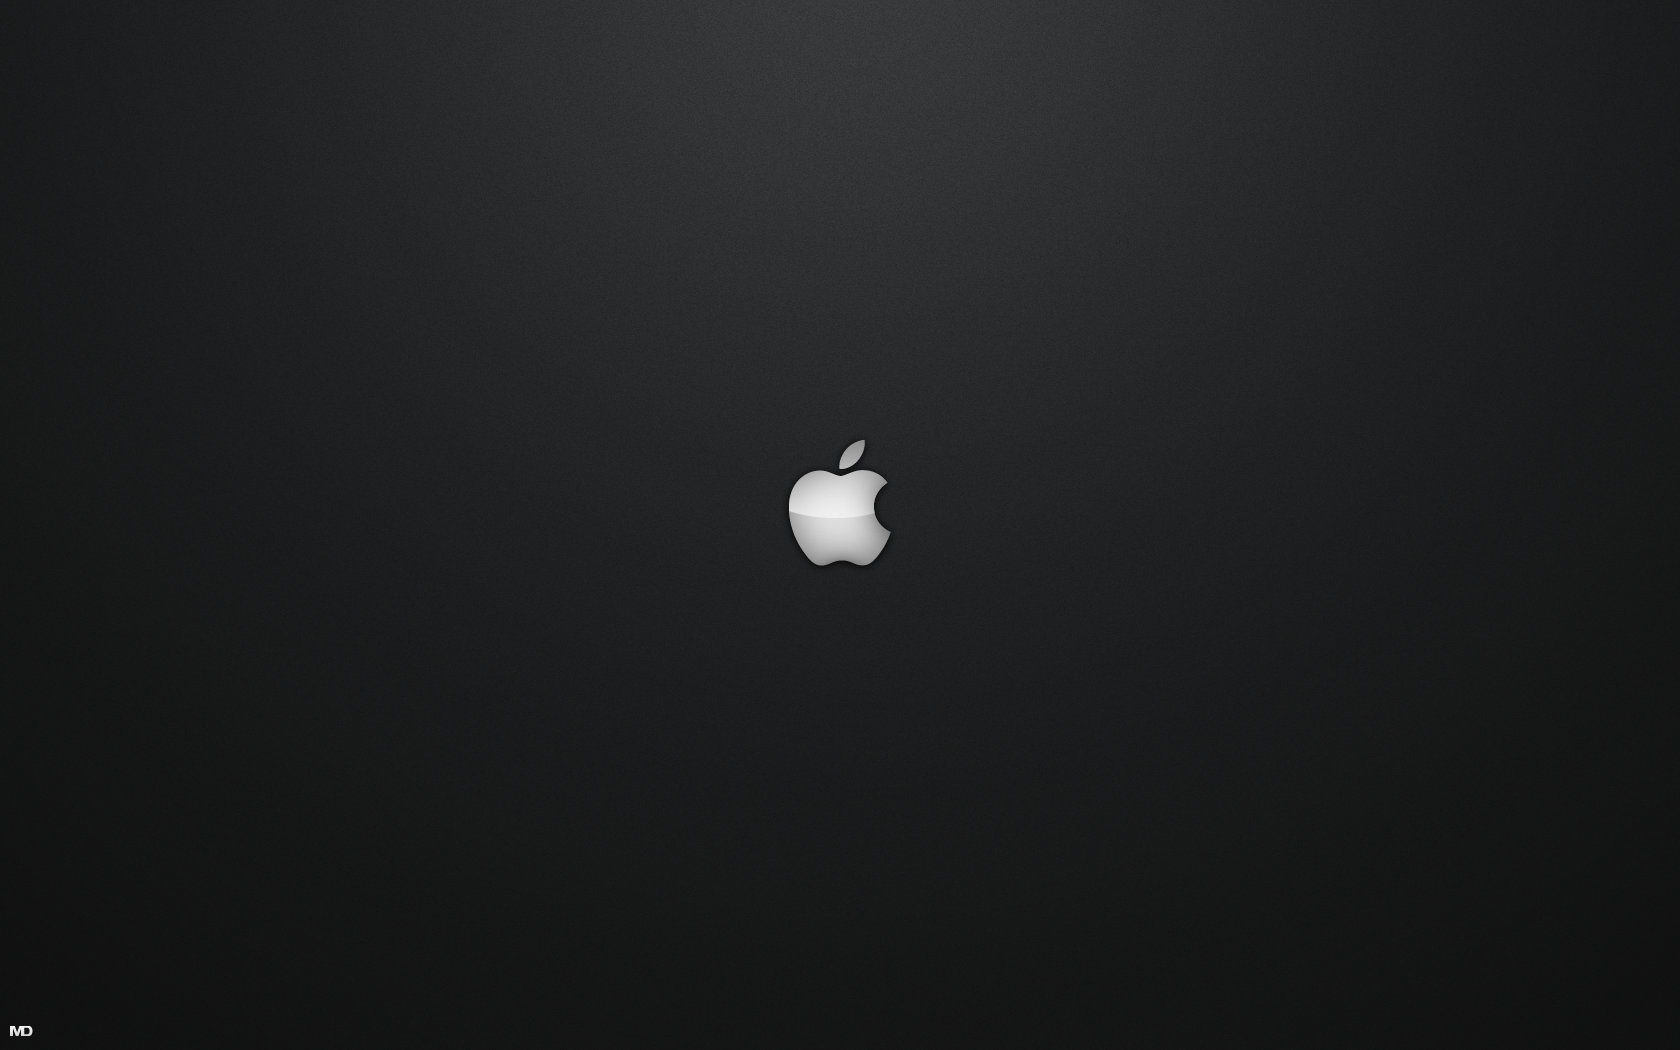 Black Cool Apple Mac Wallpaper Best 1816 Wallpaper High Resolution 1680x1050